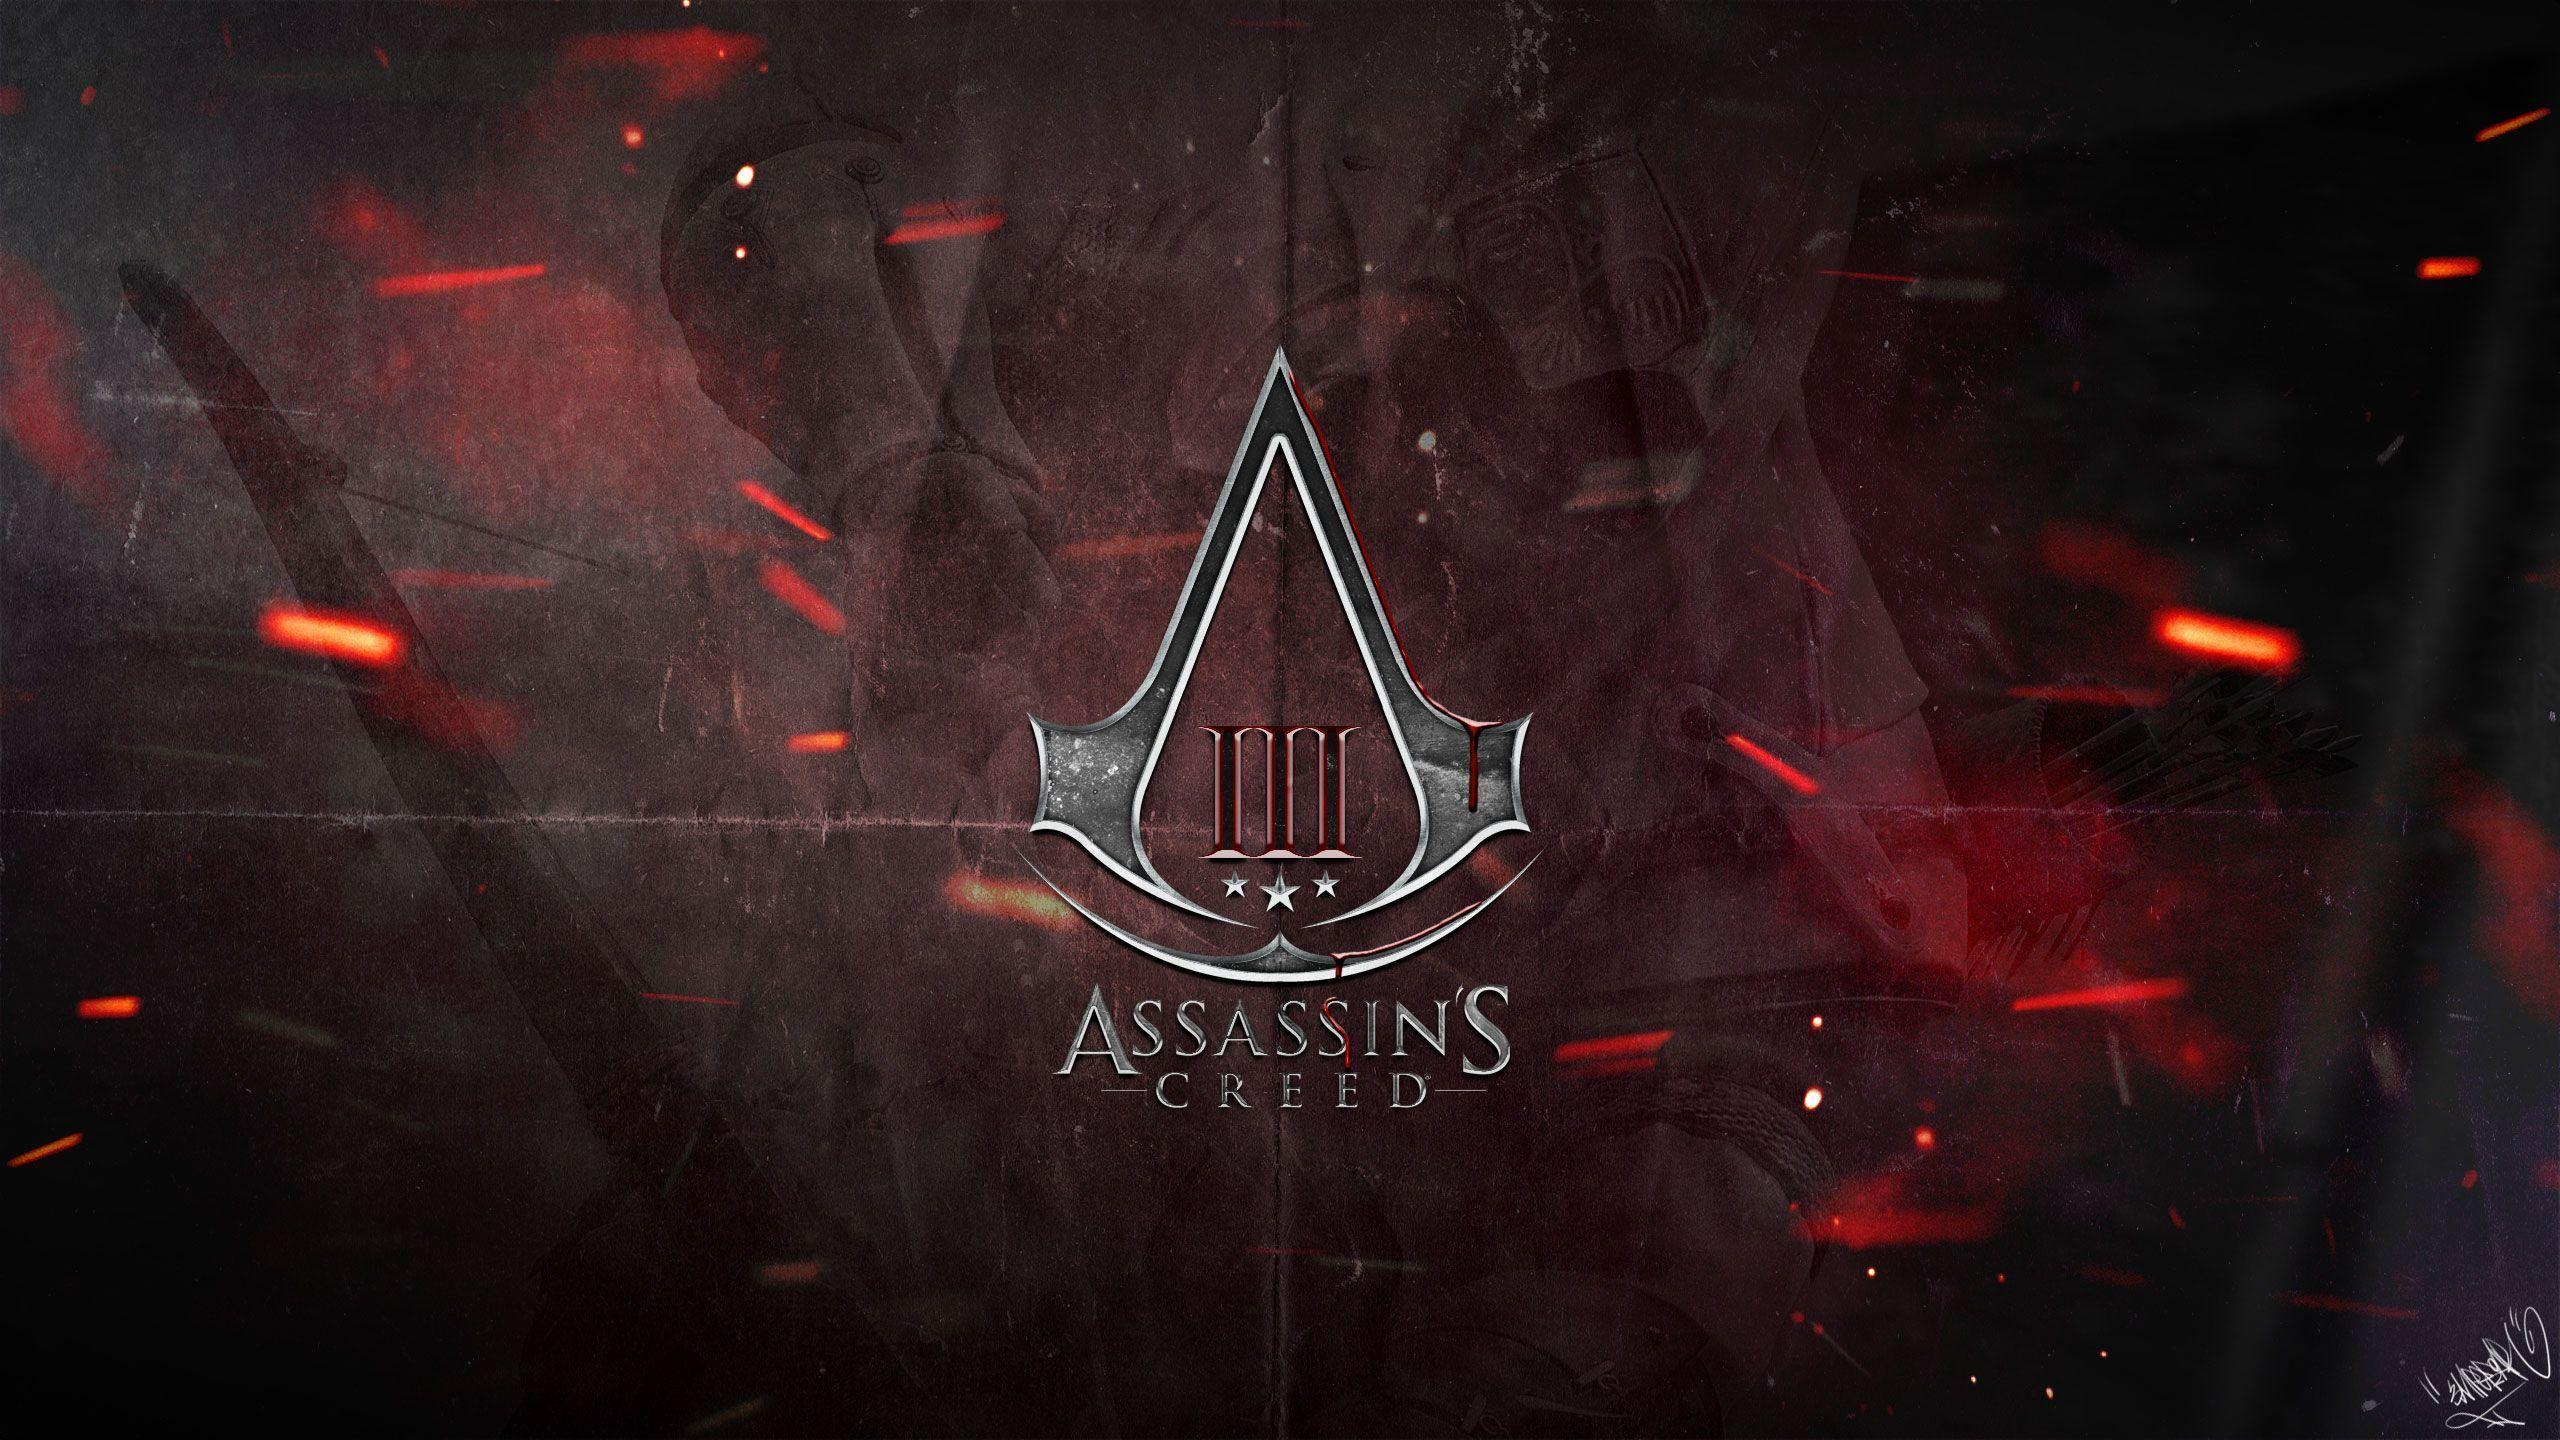 Assassins Creed Symbol Wallpapers 2560x1440